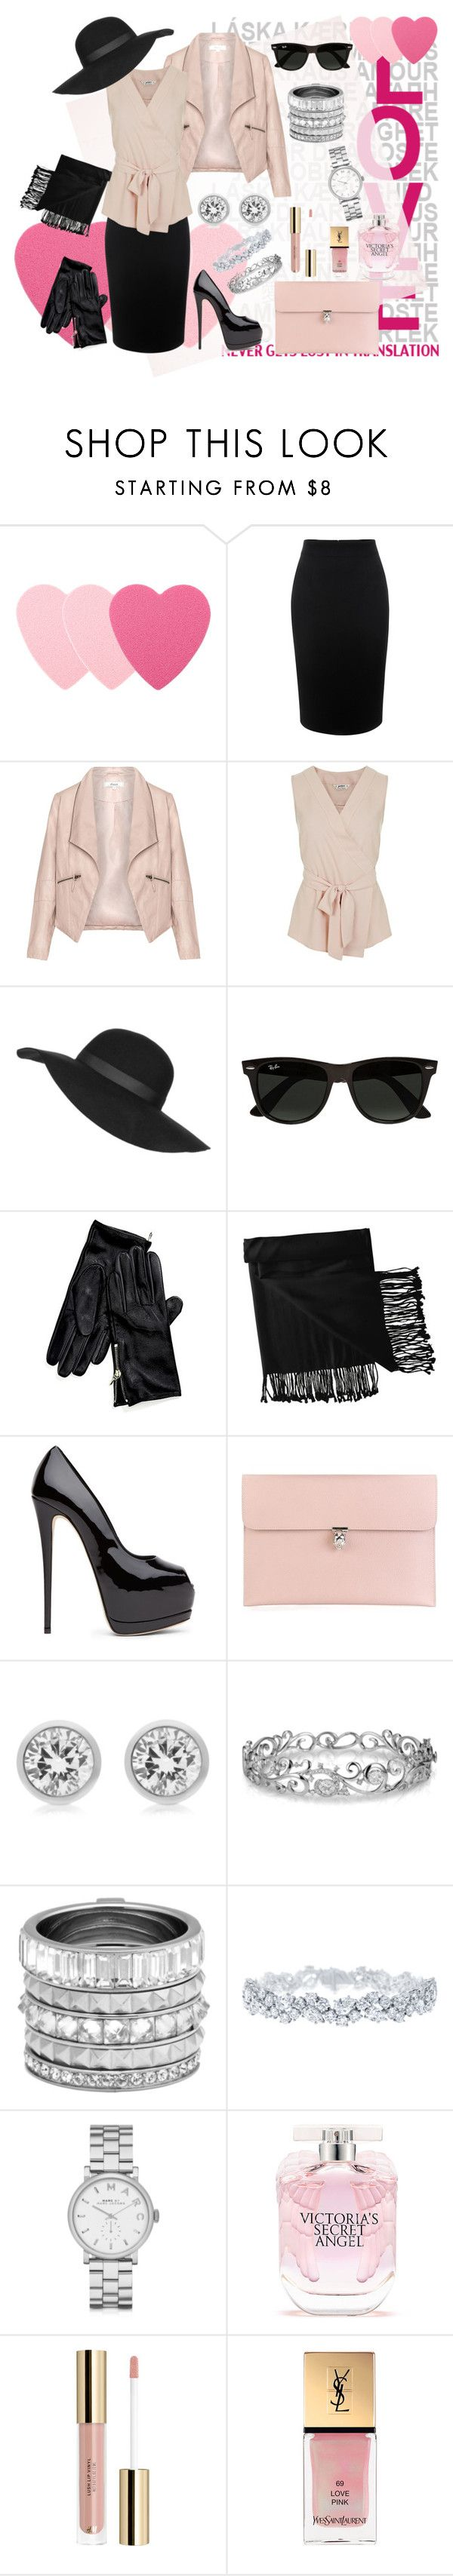 """pretty pink"" by pretty-girl81 on Polyvore featuring moda, Sephora Collection, Alexander McQueen, Zizzi, Miss Selfridge, Topshop, Ray-Ban, Tommy Hilfiger, New Directions e Michael Kors"